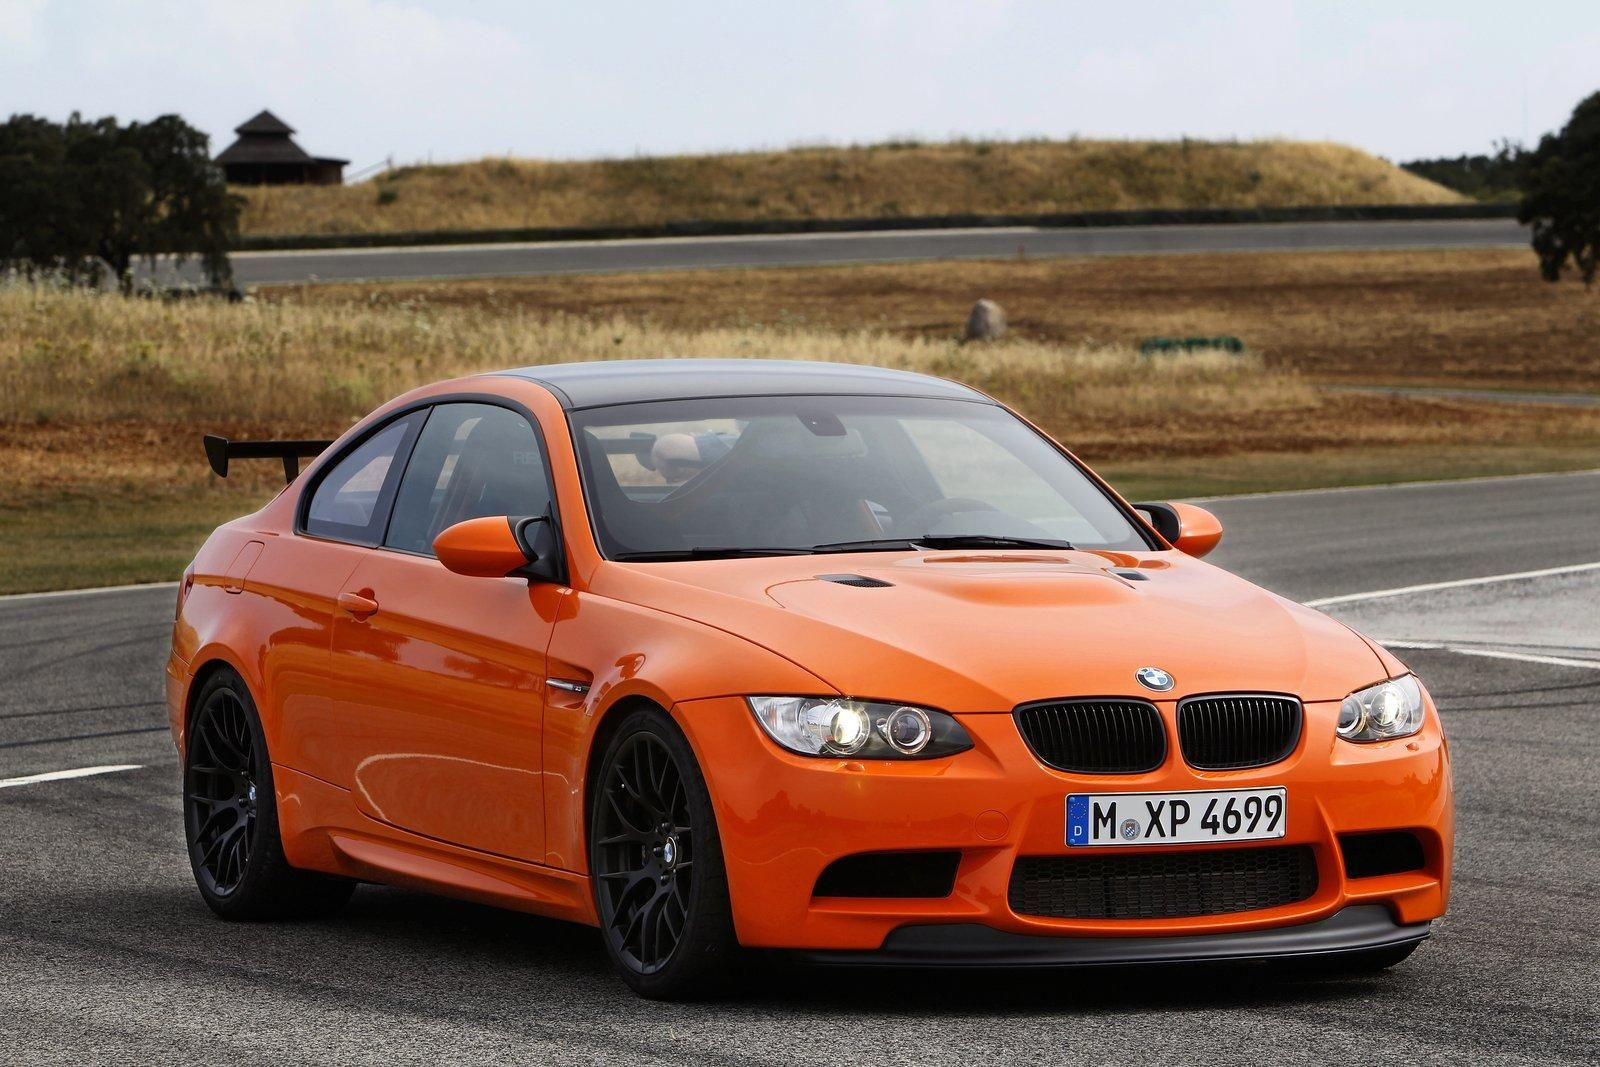 Bmw M3 Coupe E92 Gts 2010 With Images Bmw Bmw M3 Bmw M3 Coupe